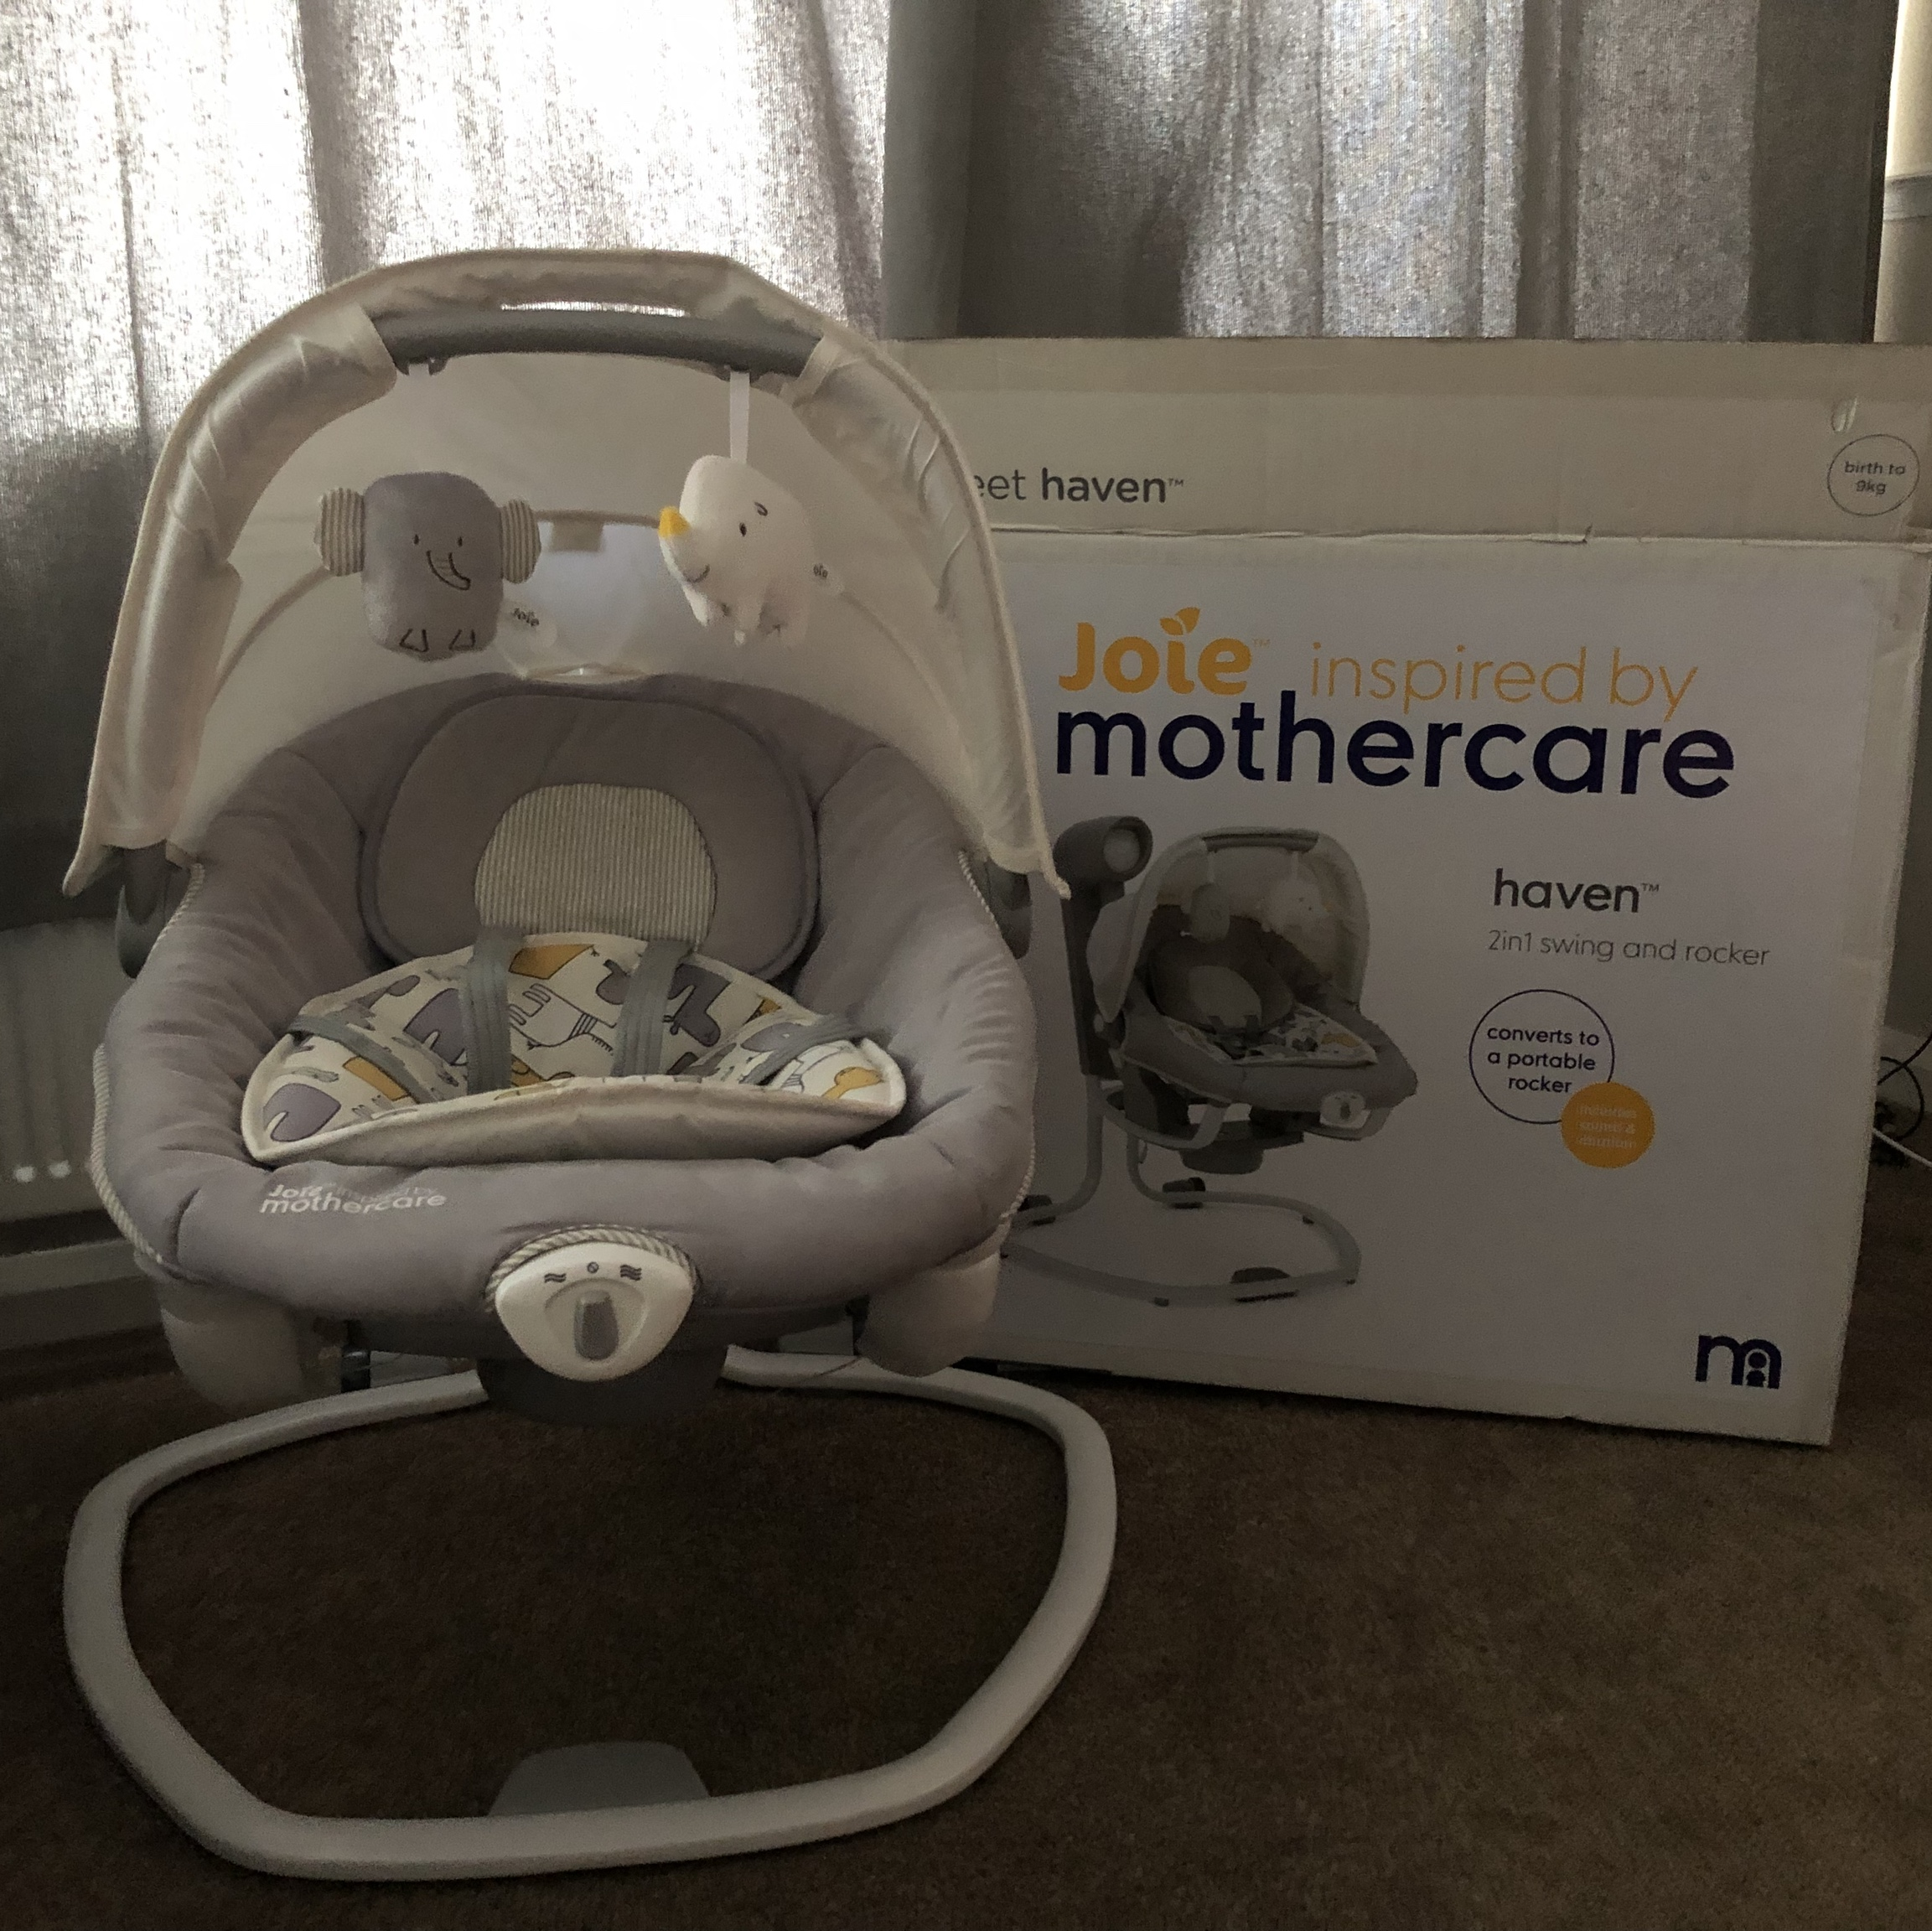 Joie Baby Swing Rocker Joie Inspired By Mothercare 2 In 1 Haven Swing Depop